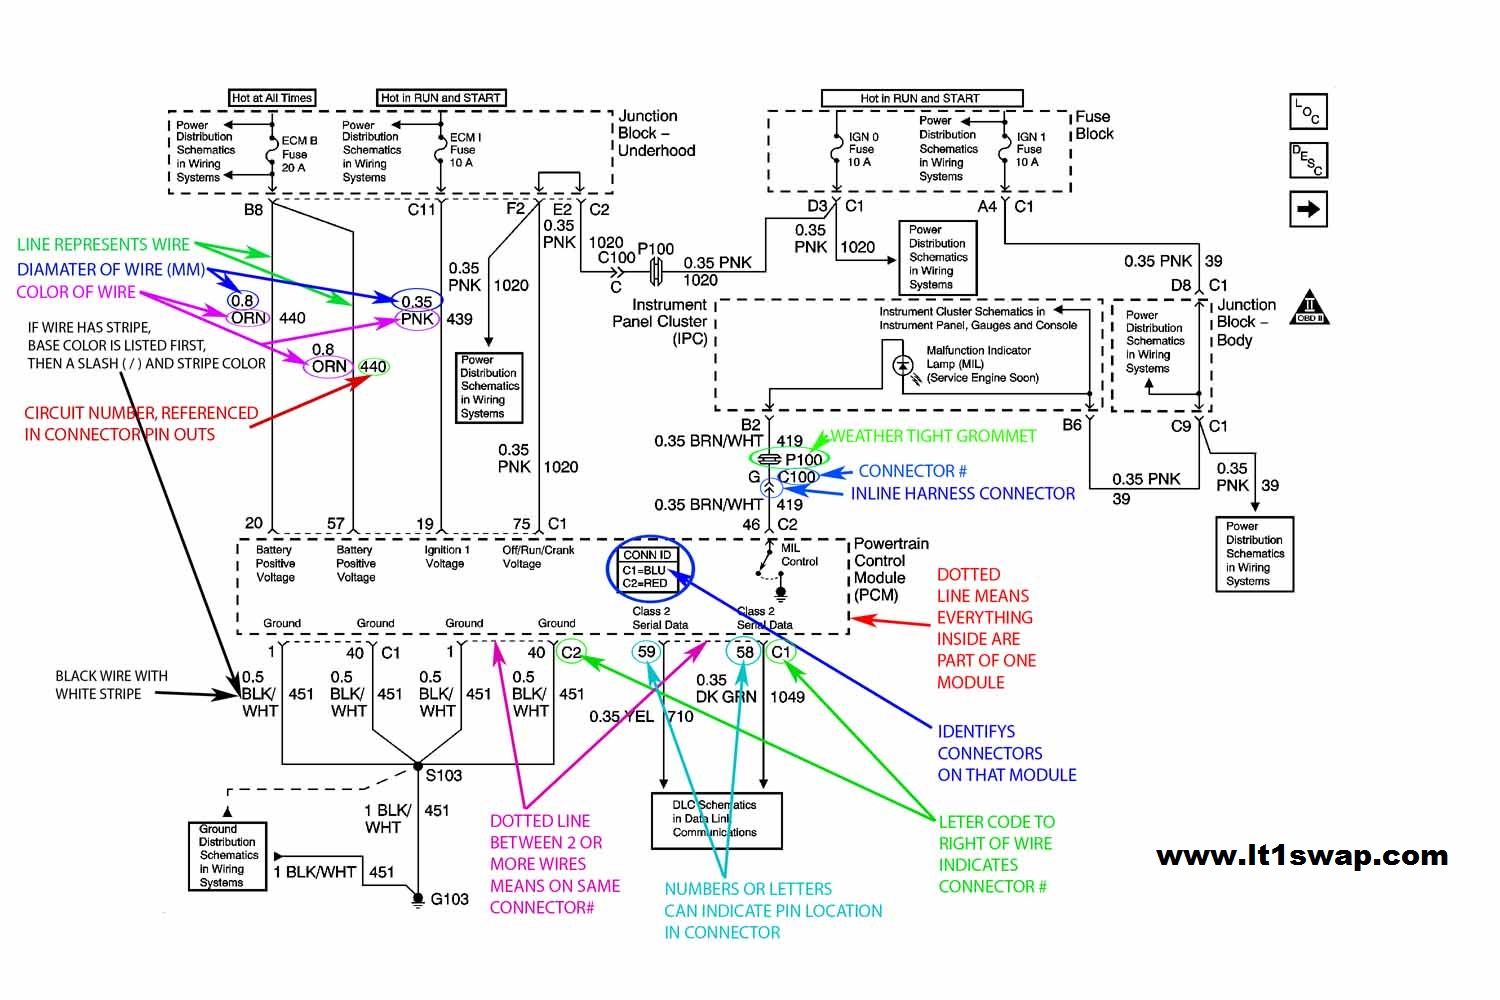 hight resolution of wiring harness informationsample schematic similar to what you may see in the following pages this may